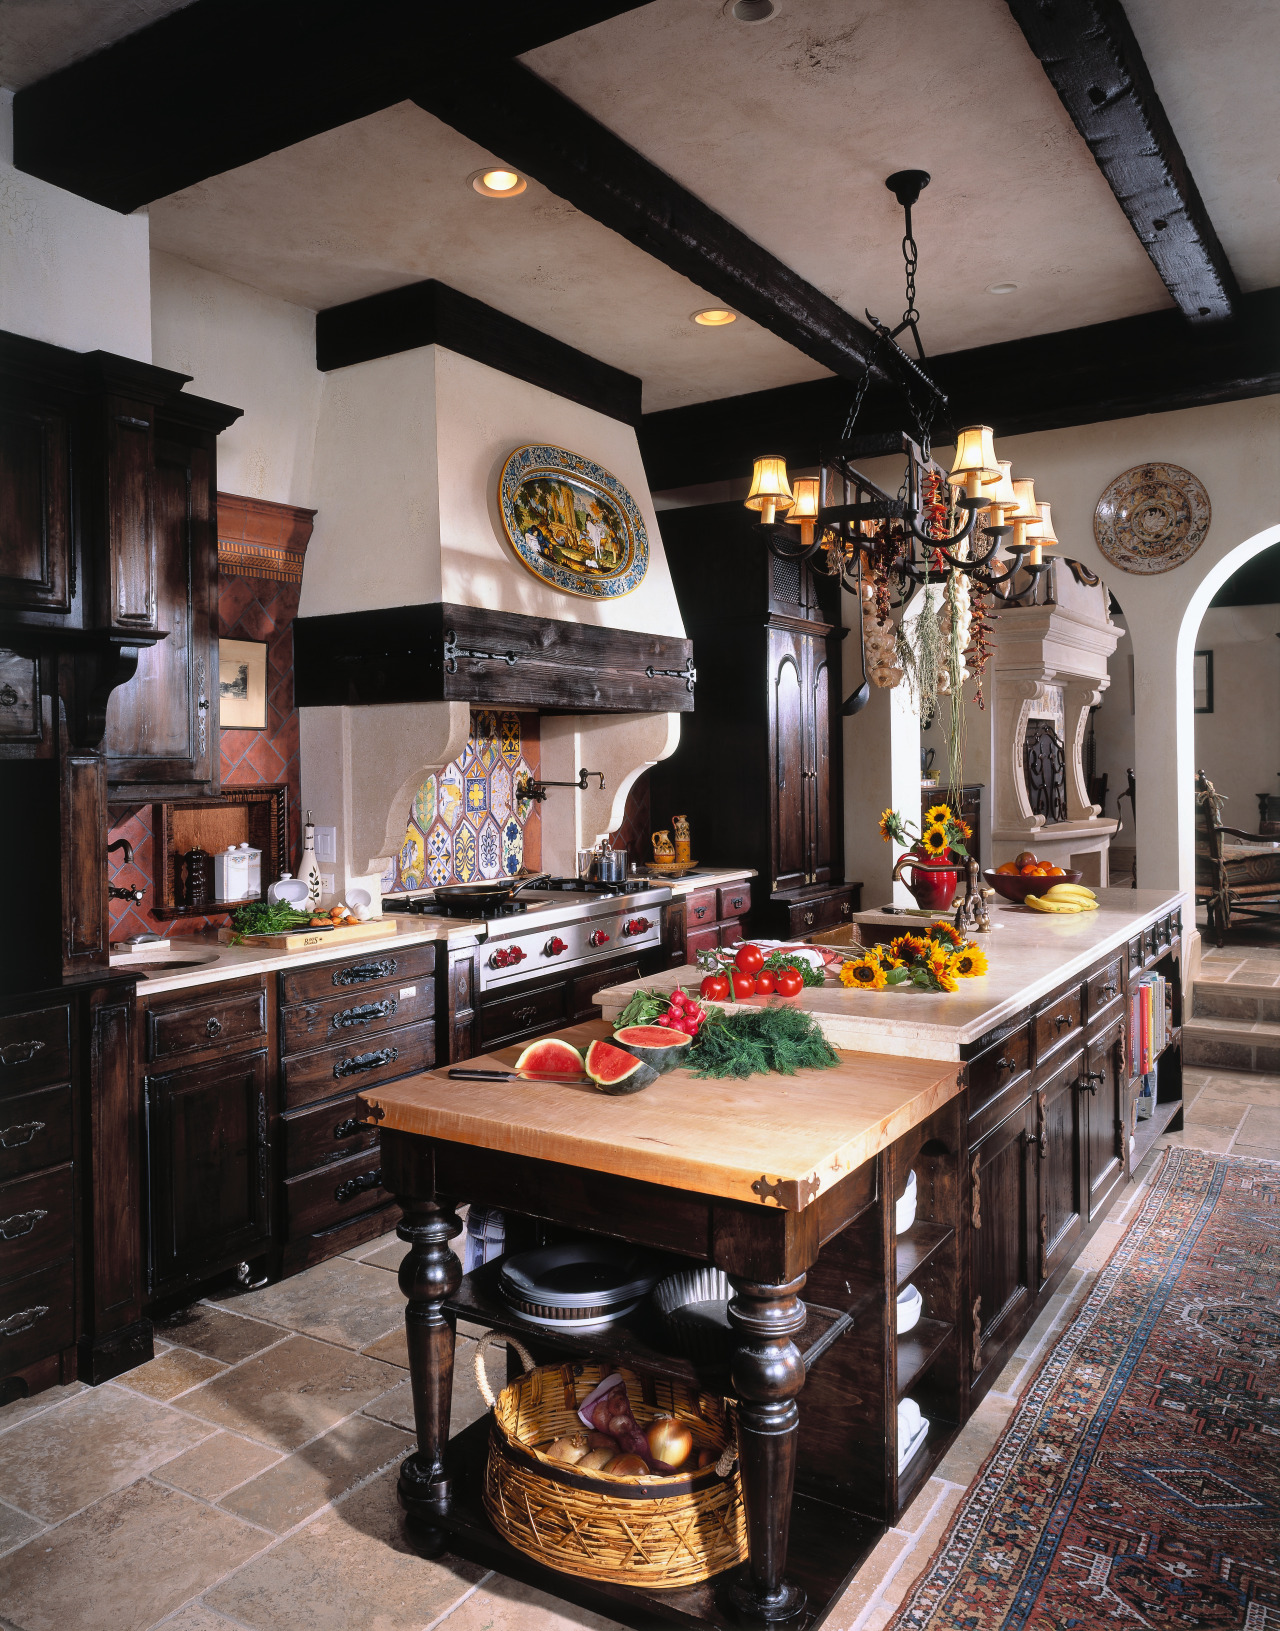 view of this kitchen featuring an electic range countertop, interior design, kitchen, room, table, black, gray